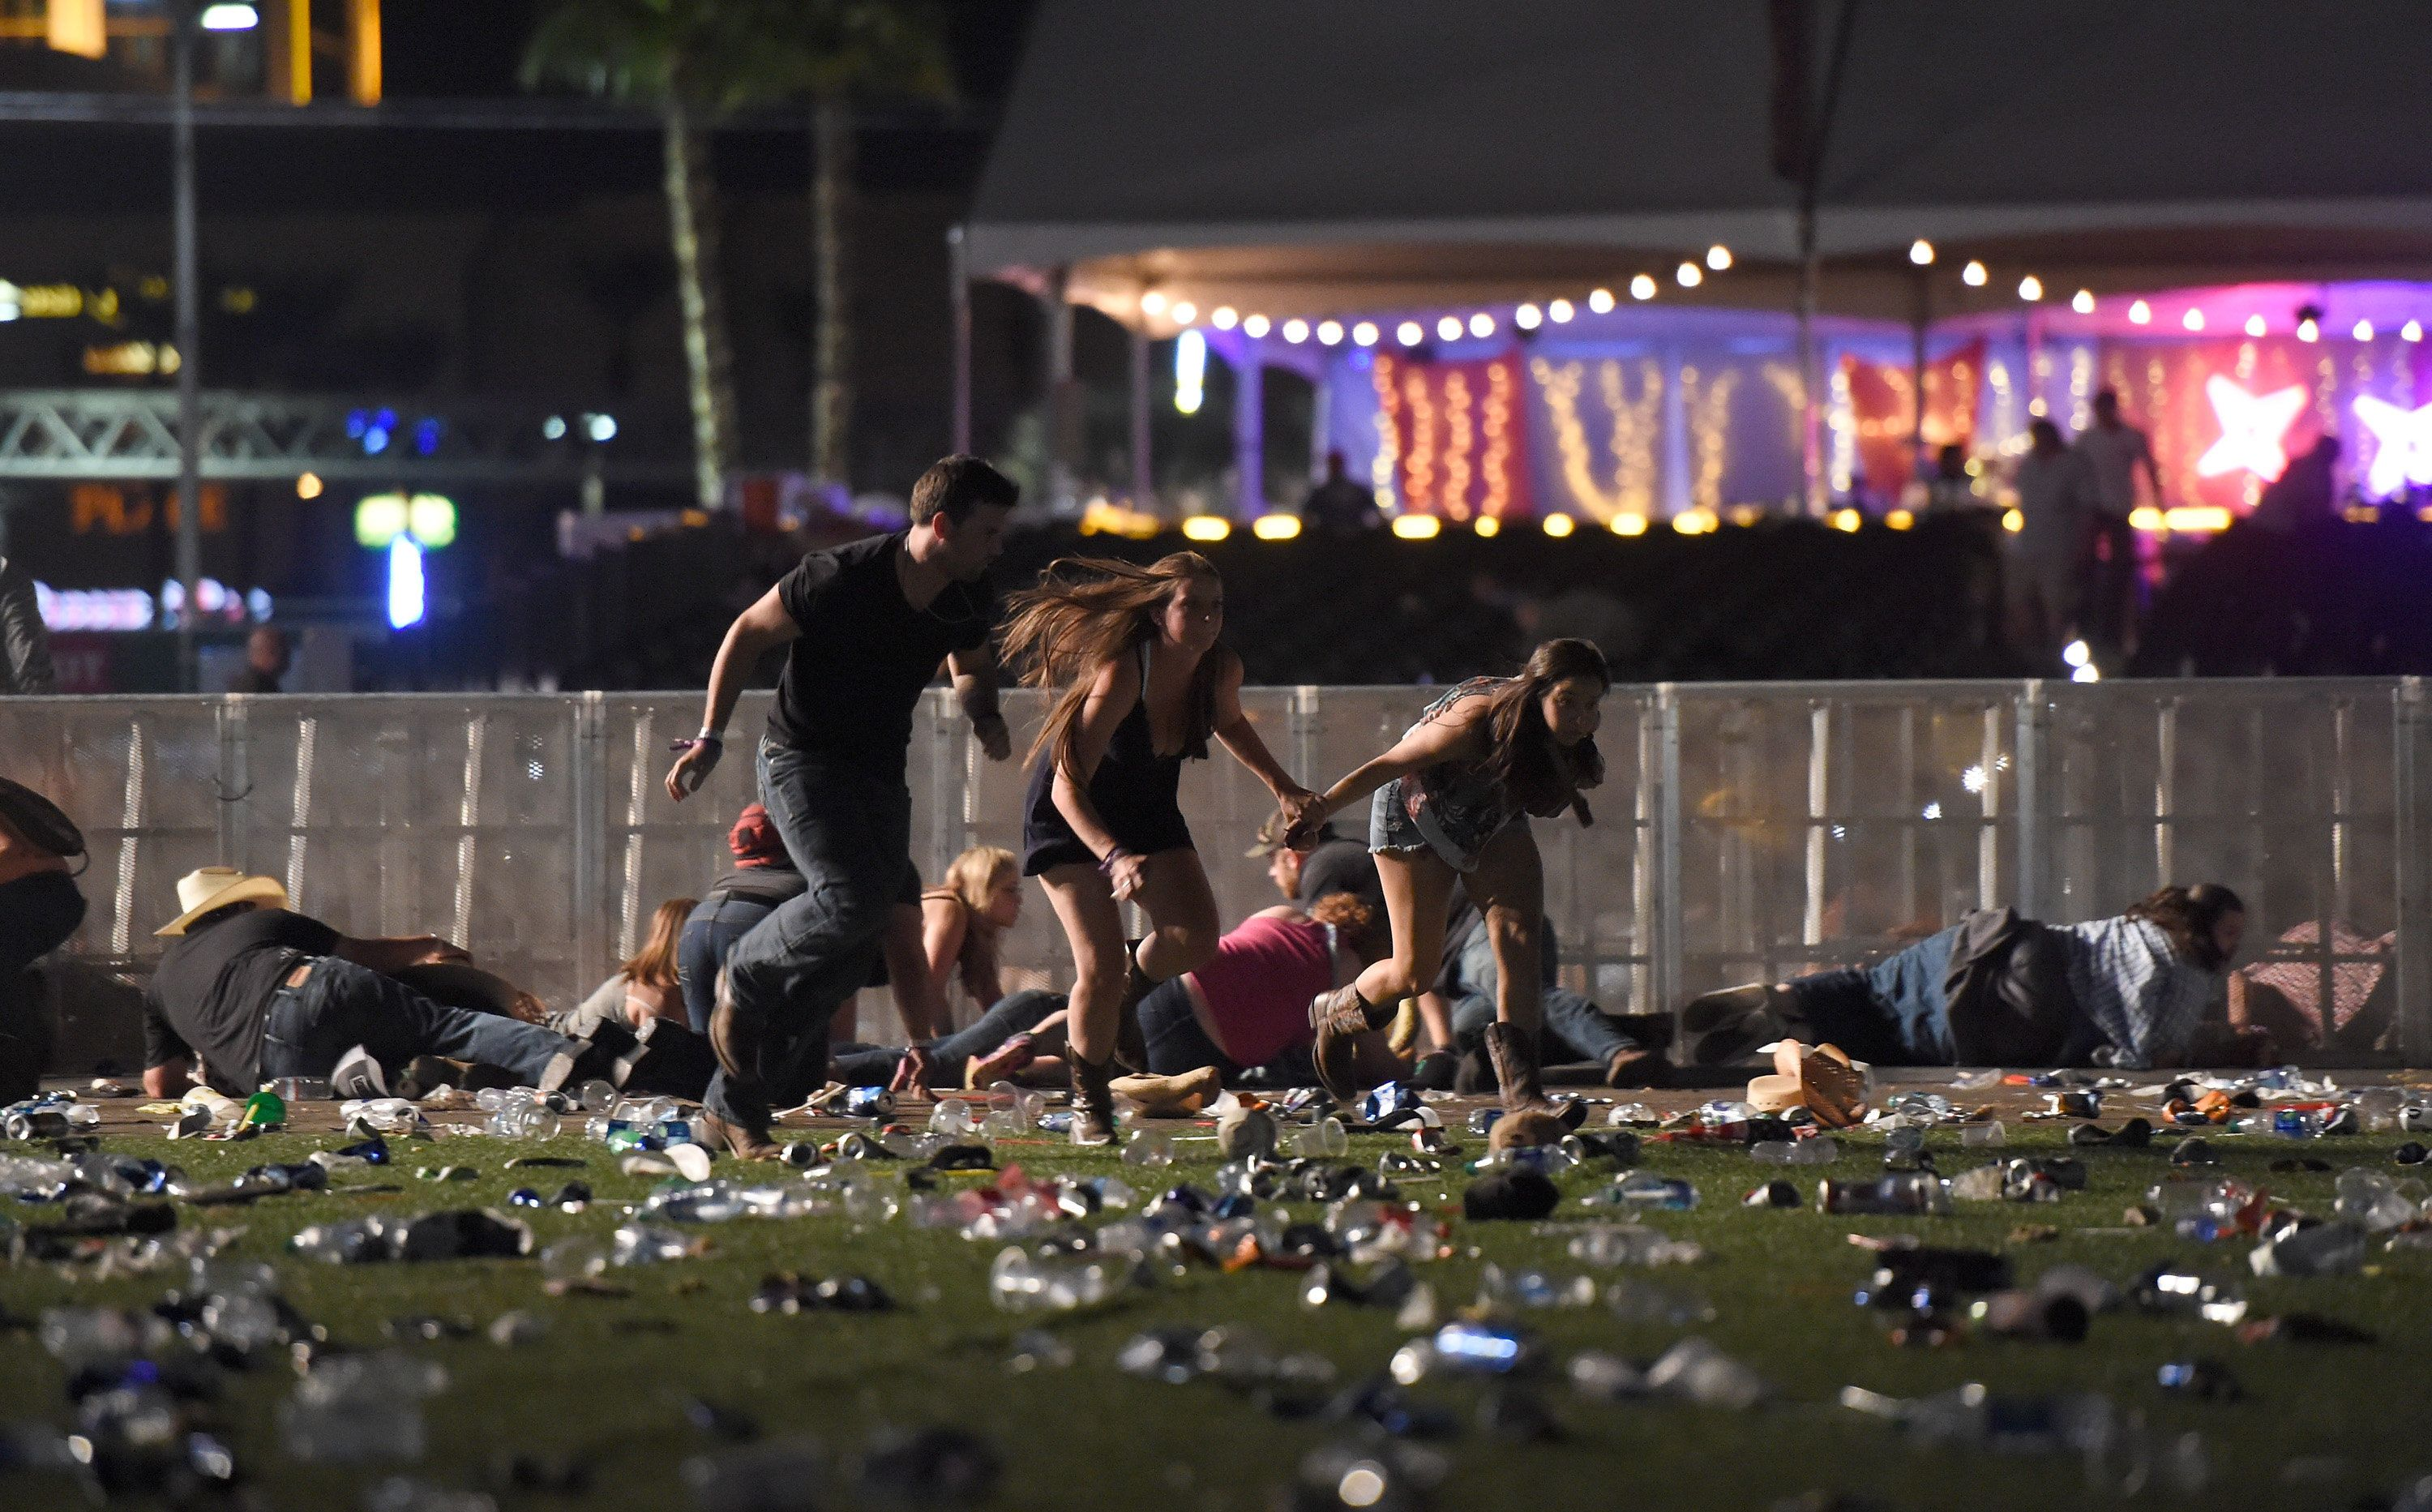 Girlfriend of Las Vegas Gunman Back in US